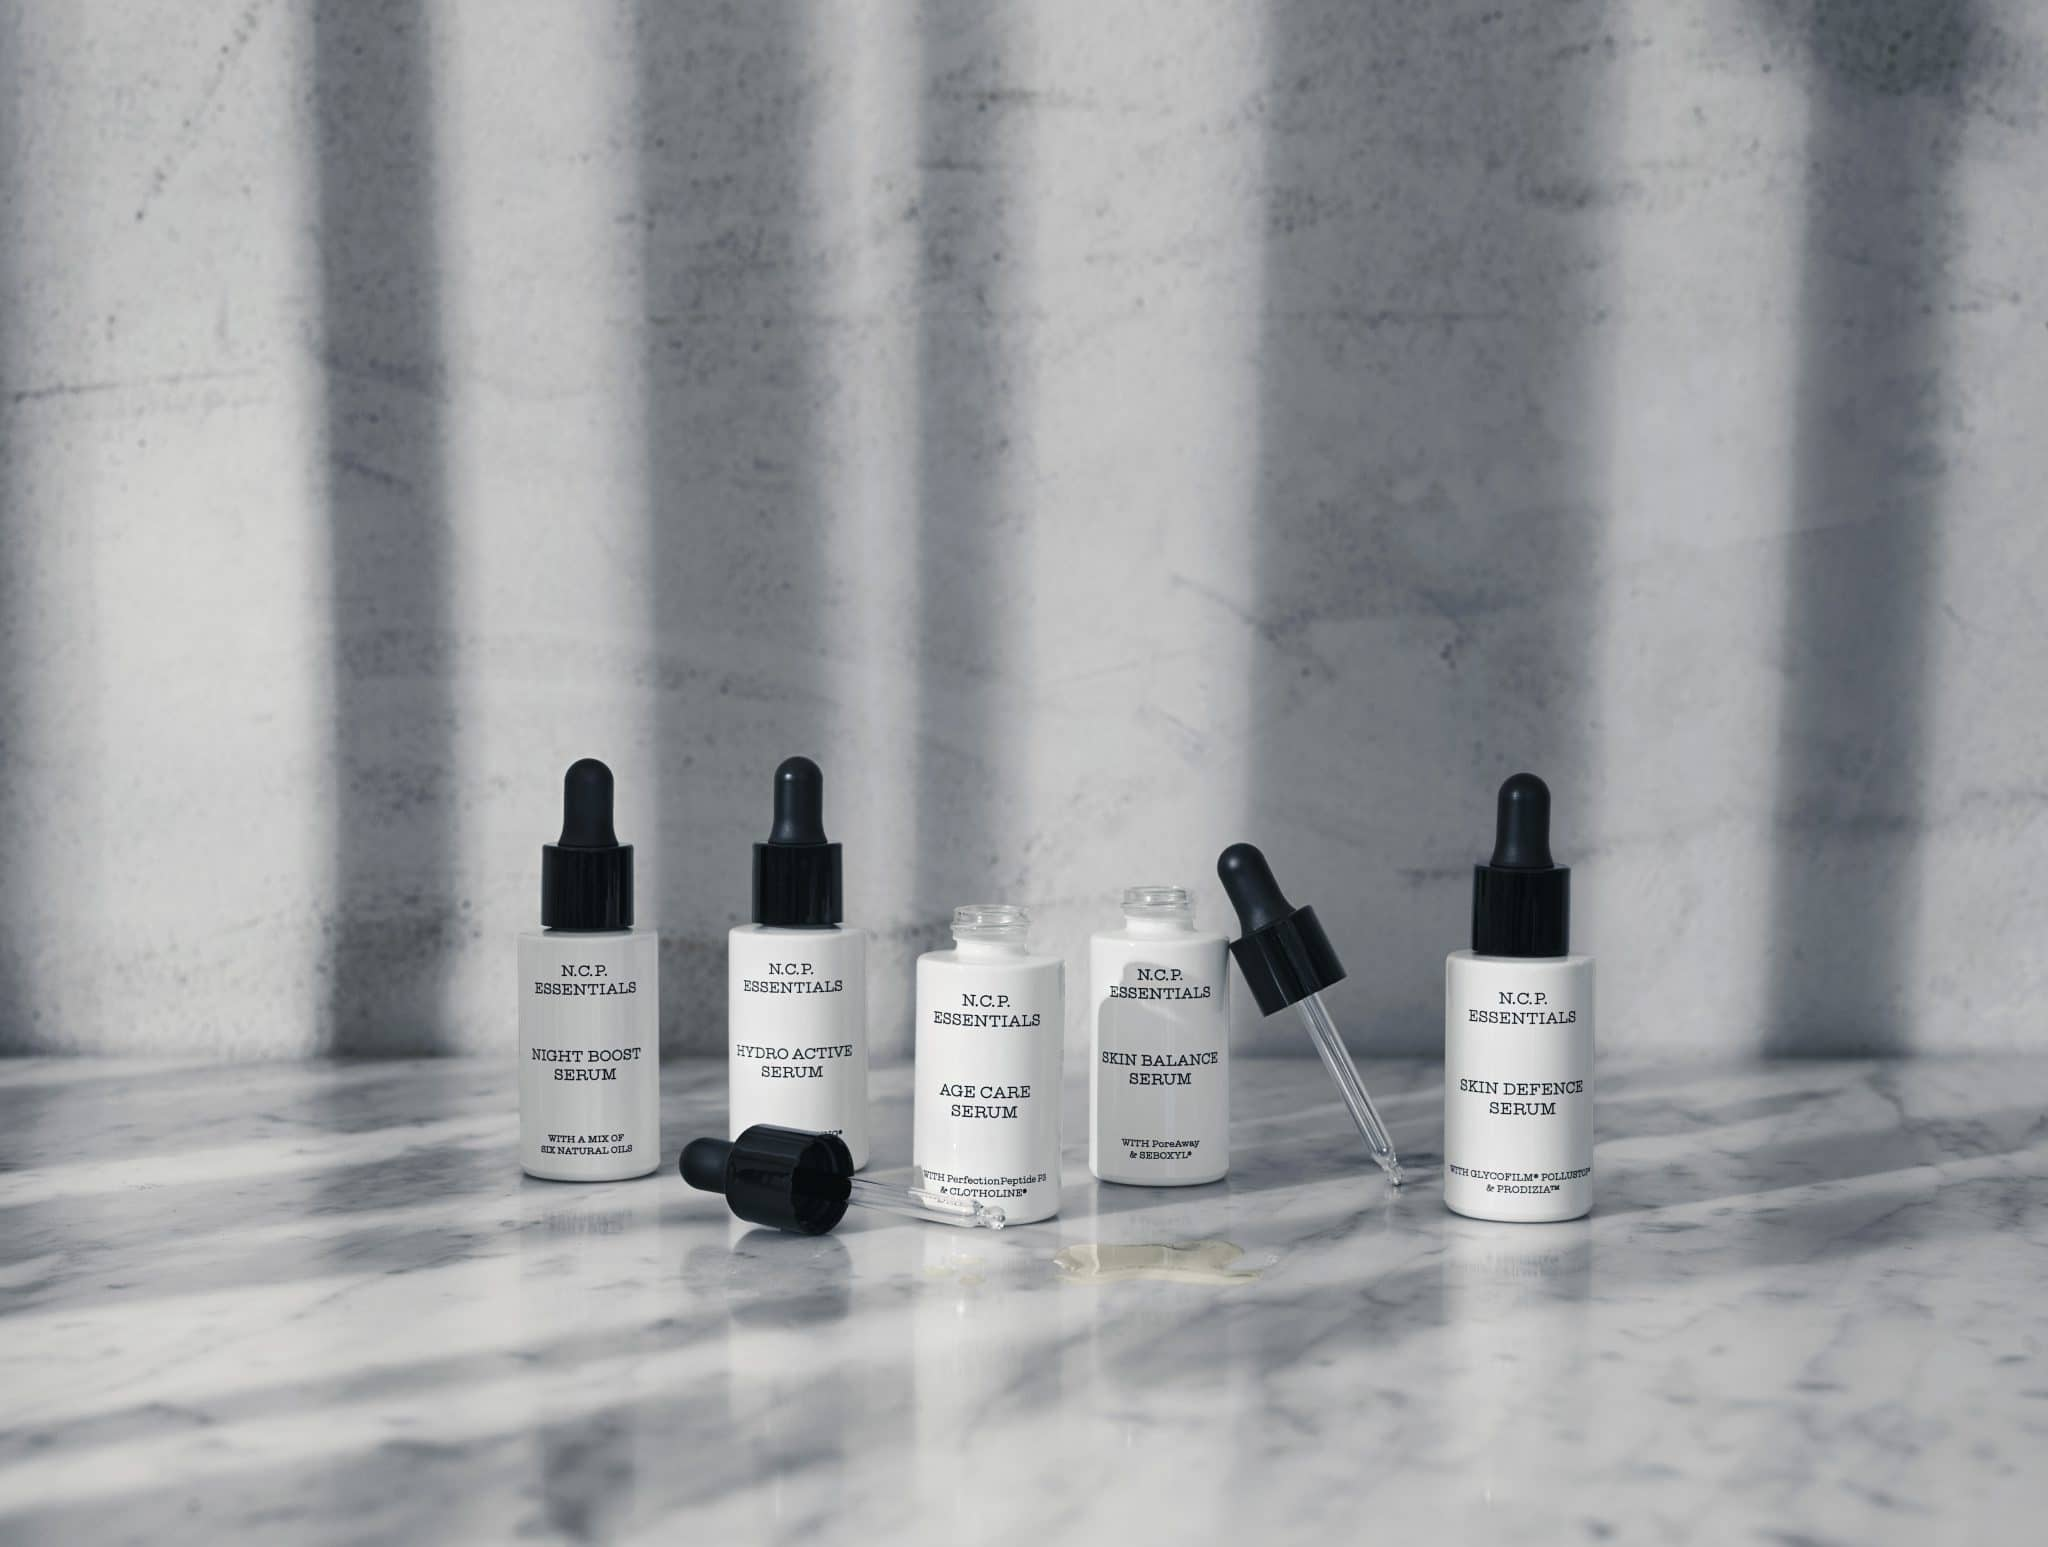 Vegan skin care from N.C.P Essentials. The boost line of Skin care on marbel table. Age Care Serum and Skin Balance Serum is open and showing the pipette.Age Care Serum, Hydro Active Serum, Night Boost Serum, Skin Balance Serum & Skin Defence Serum